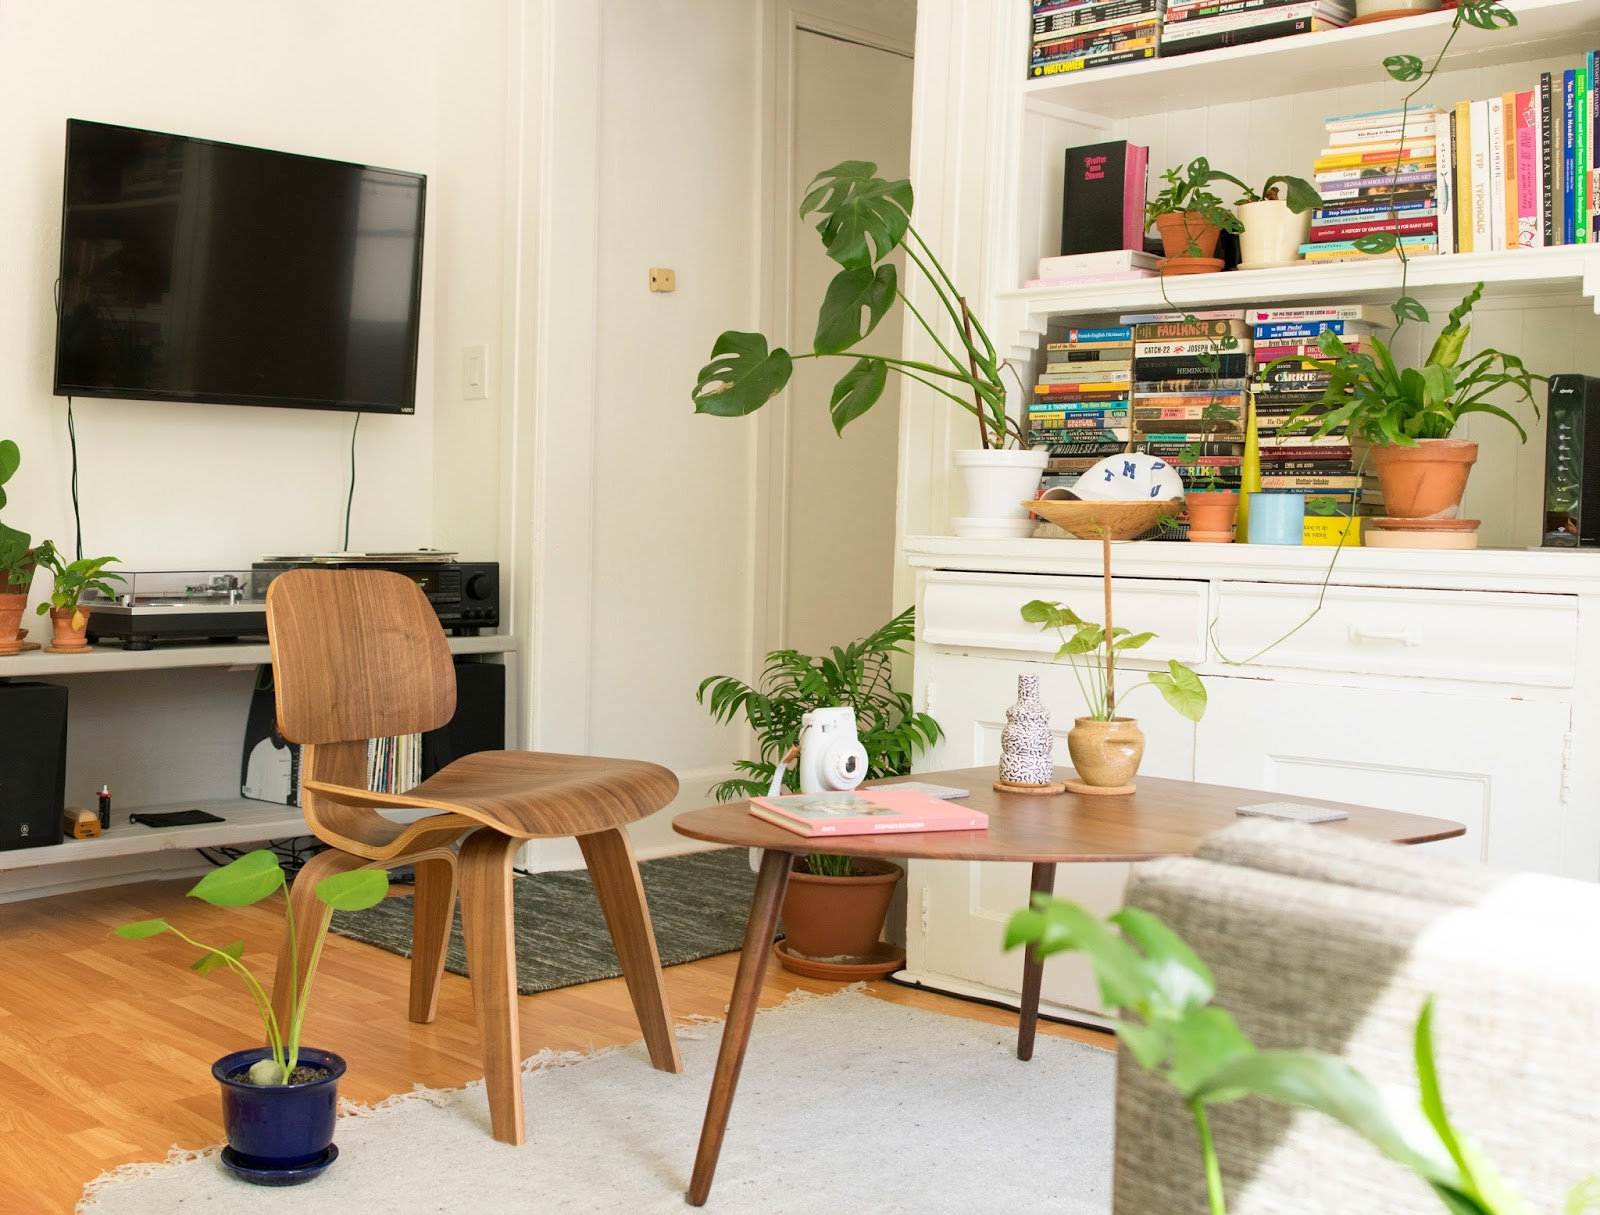 a living room with plants scatter around. There is a record player in the background with some wooden chairs around a coffee table.